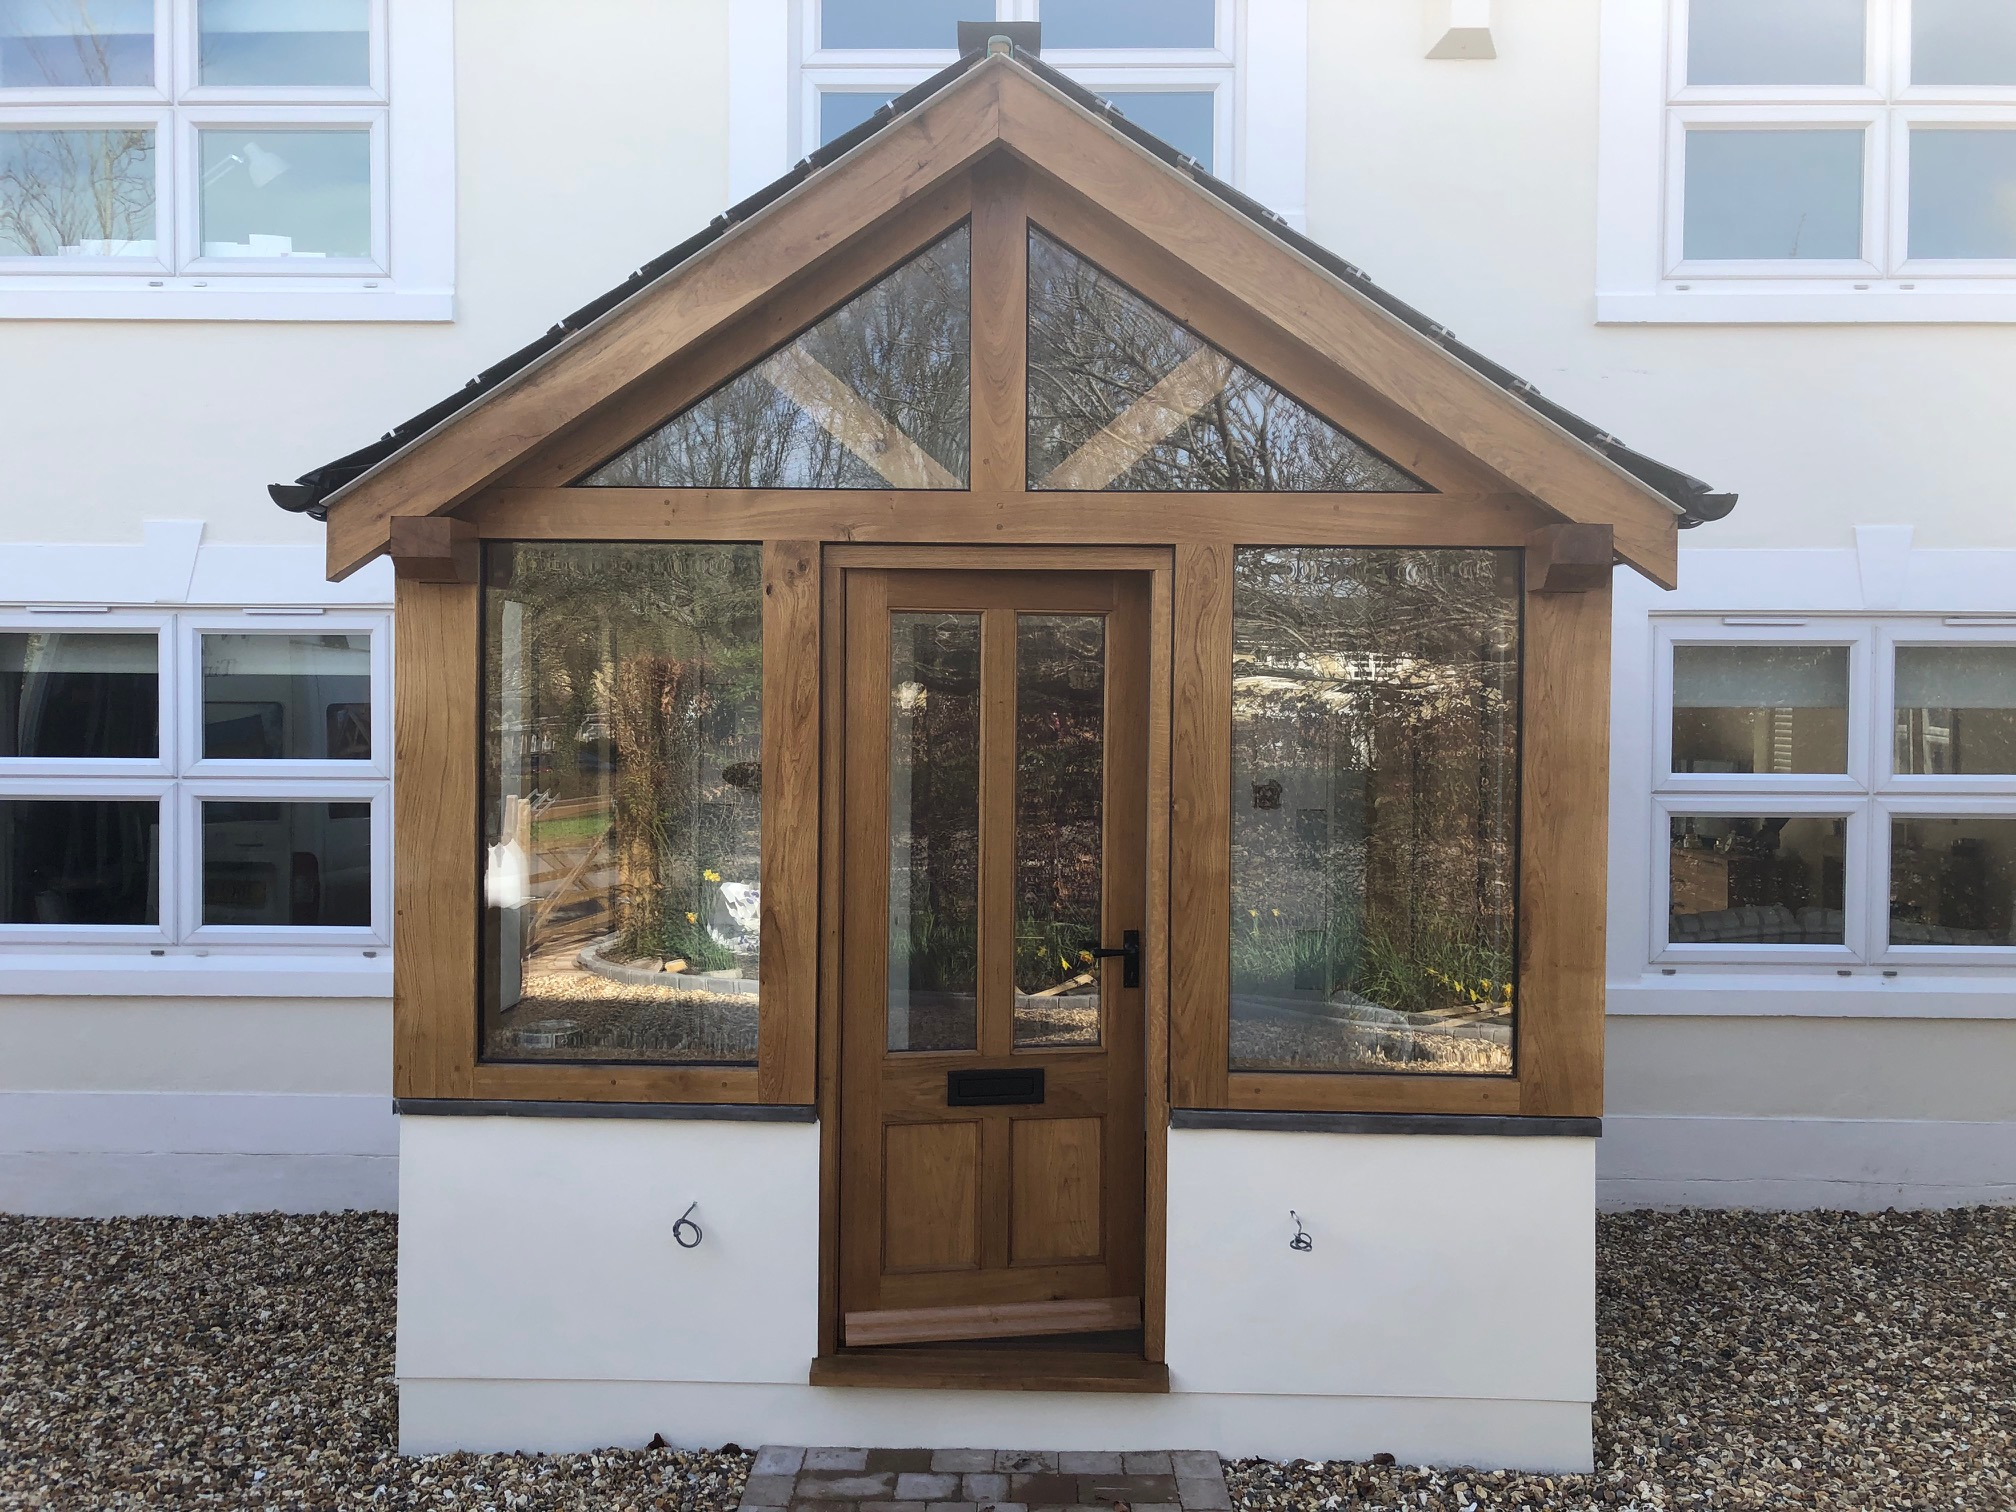 Enclosed oak porch with double glazed units and a slate roof